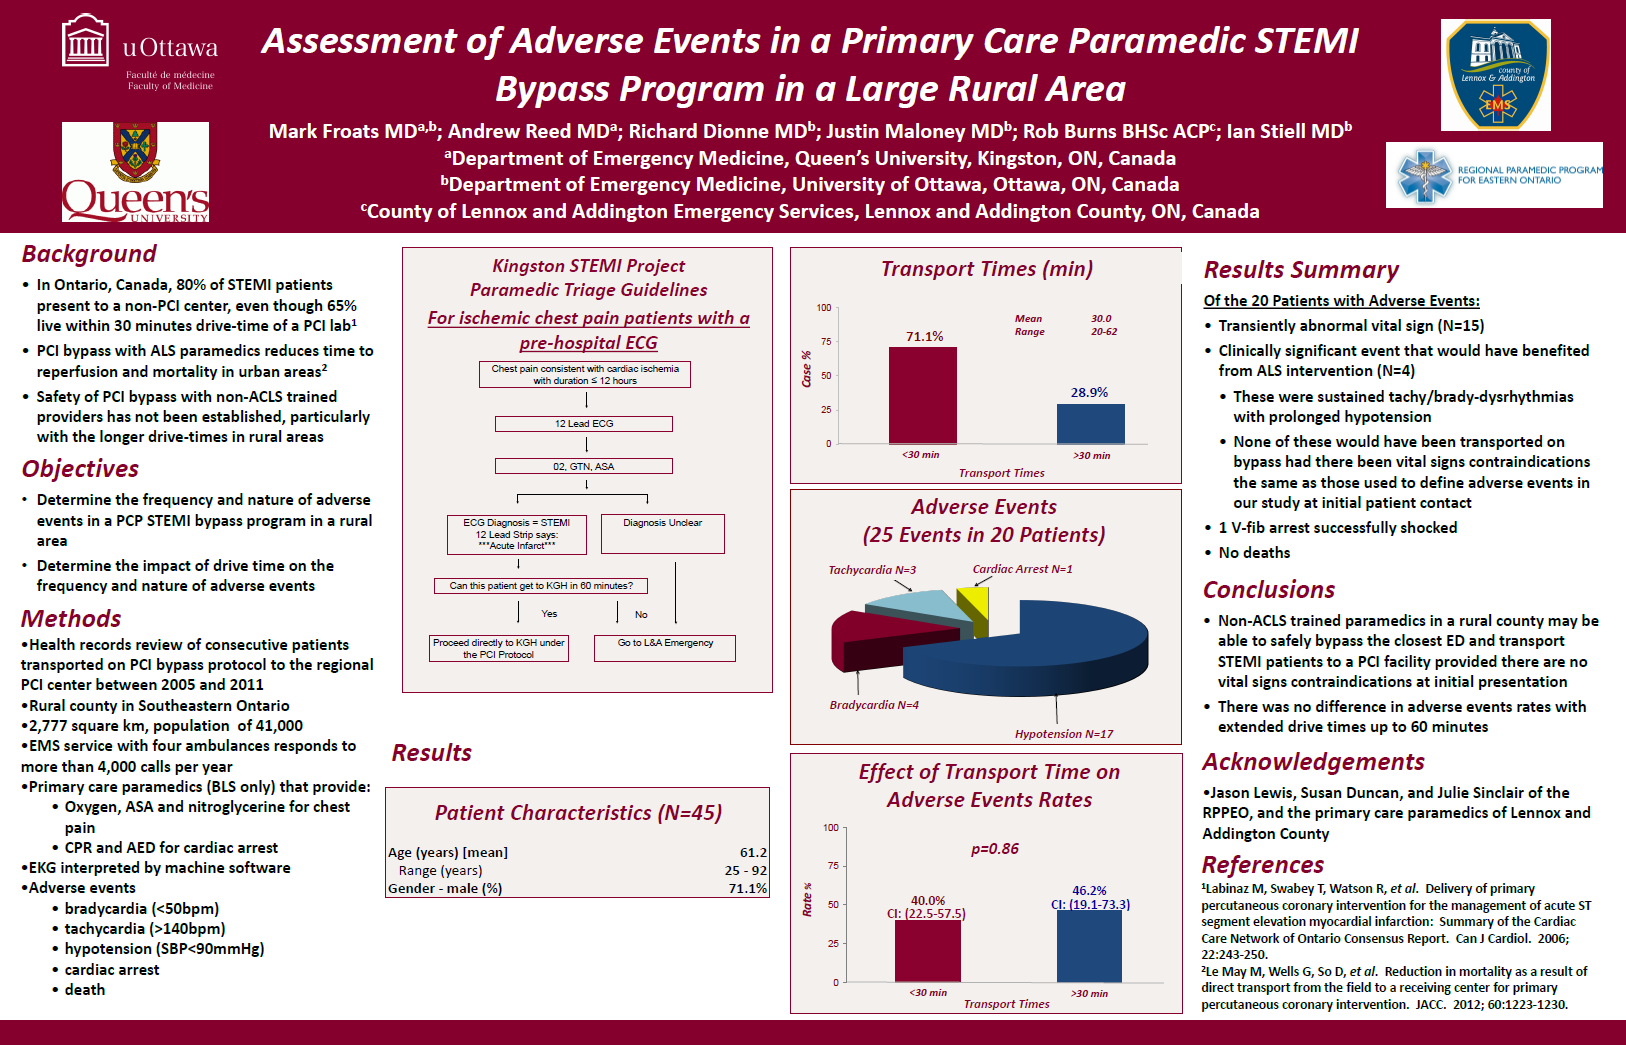 Assessment of Adverse Events in a Primary Care Paramedic ST-segment Elevation Myocardial Infarction Bypass Program in a large Rural Area